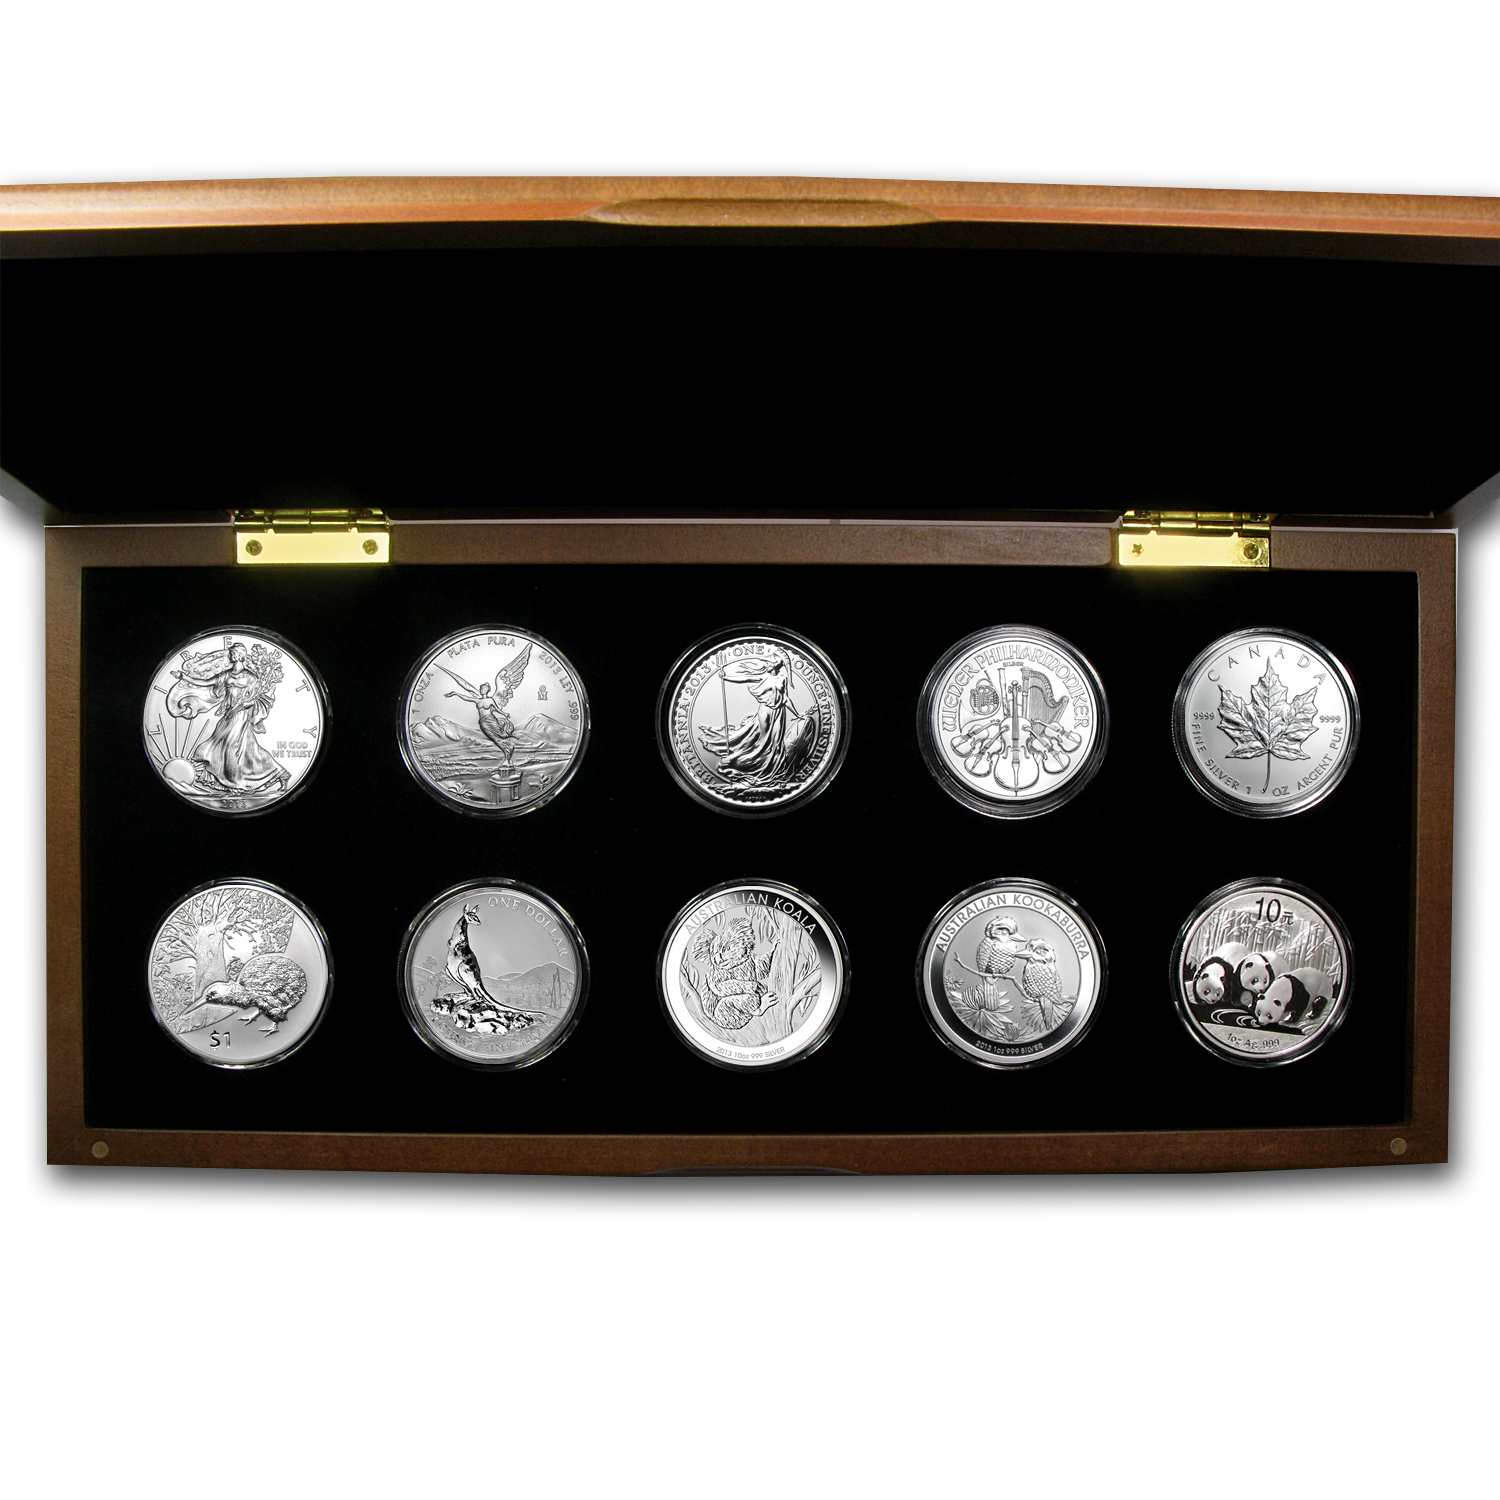 2013 10-Coin 1 oz Silver Around the World Bullion Set BU